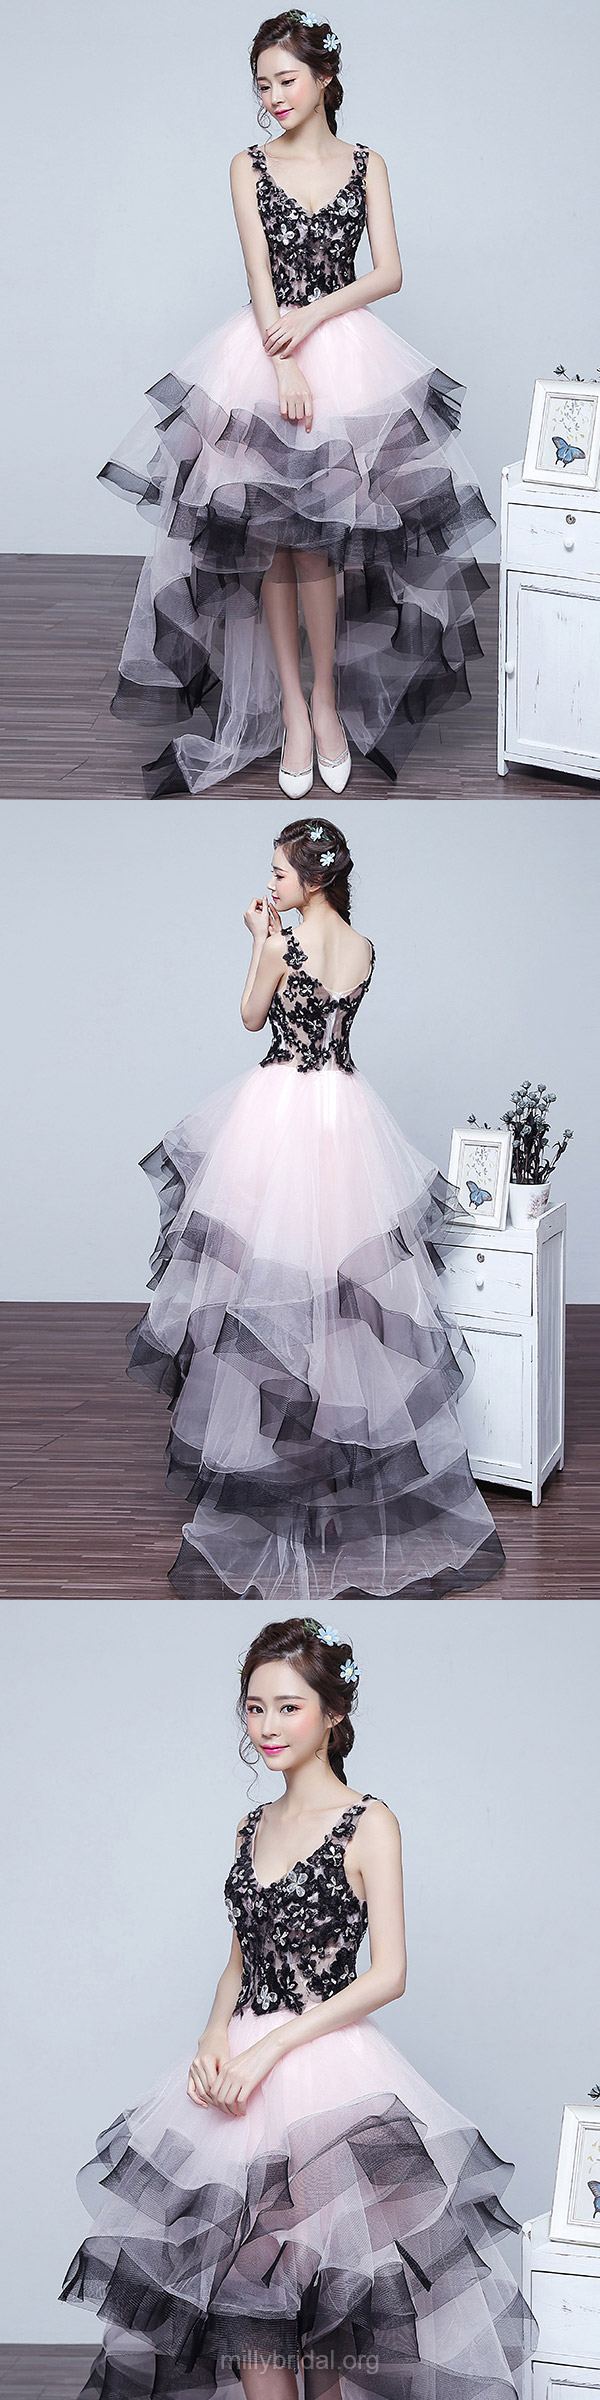 High low prom dresses lace princess party dresses vneck tulle